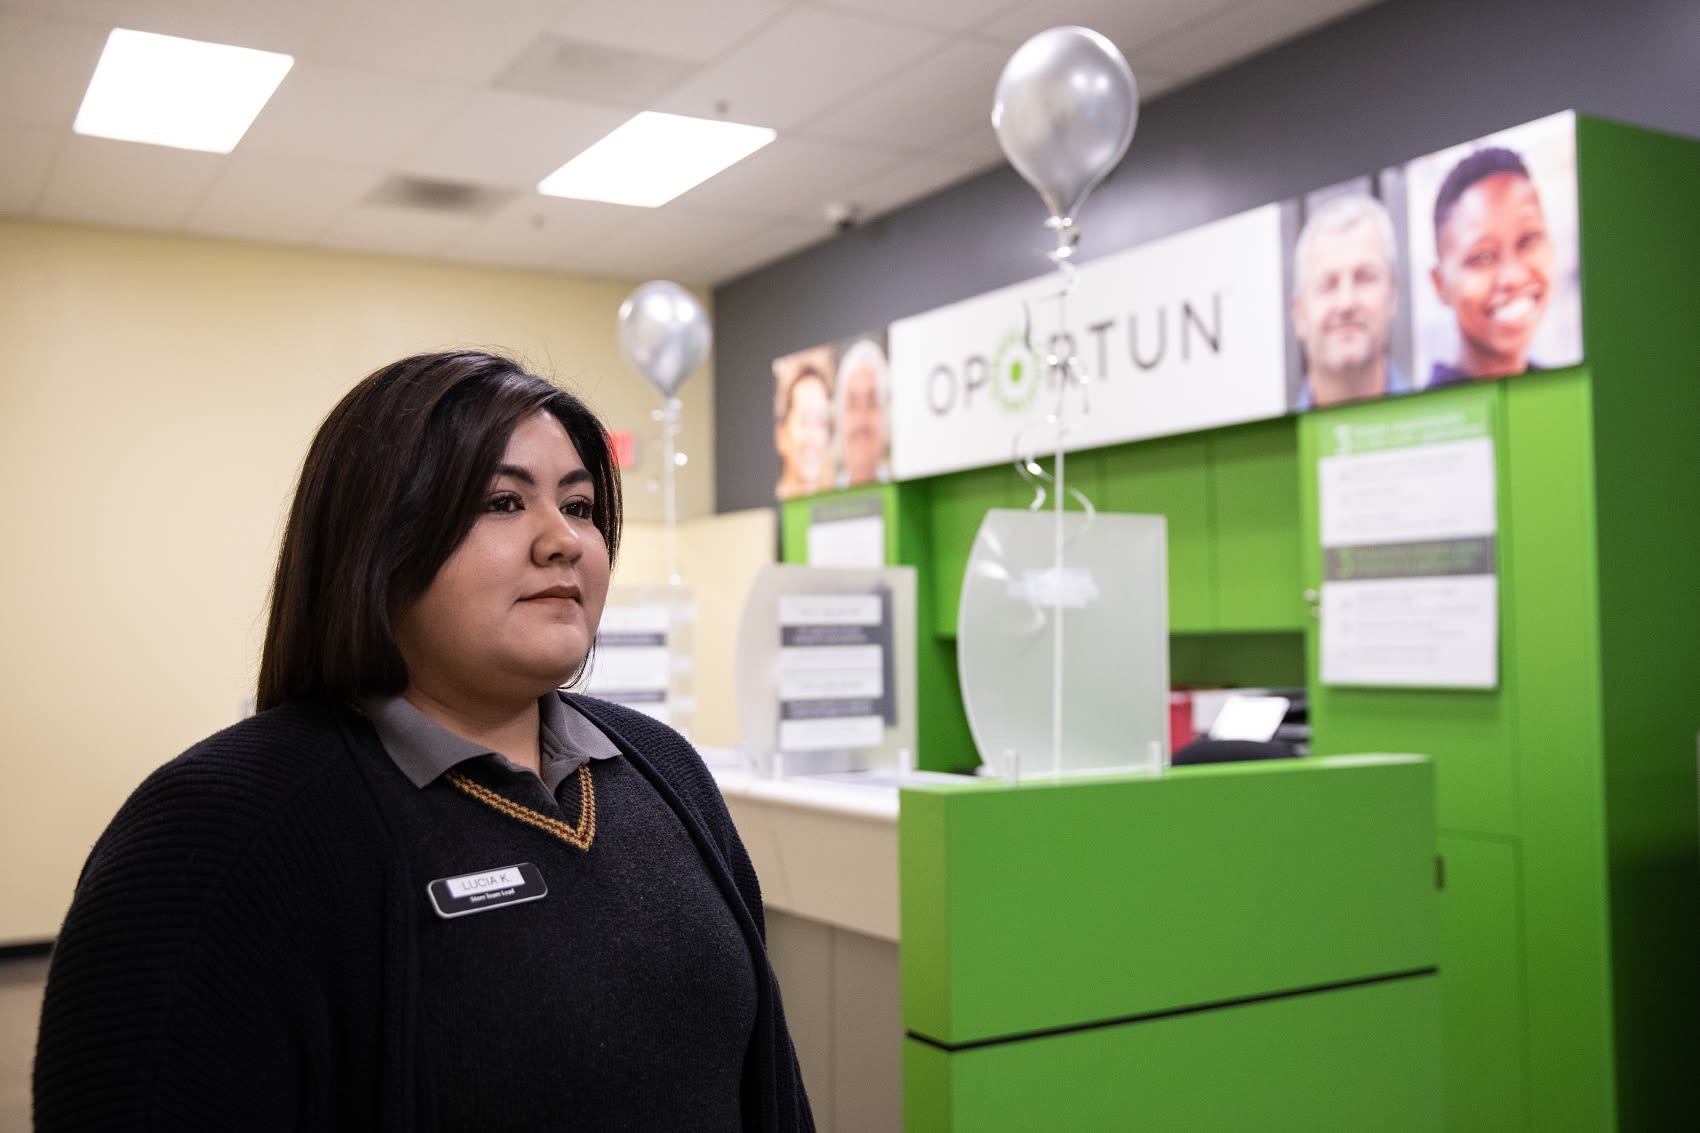 An Oportun employee stands in an Oportun loan agency with a thoughtful expression on her face.